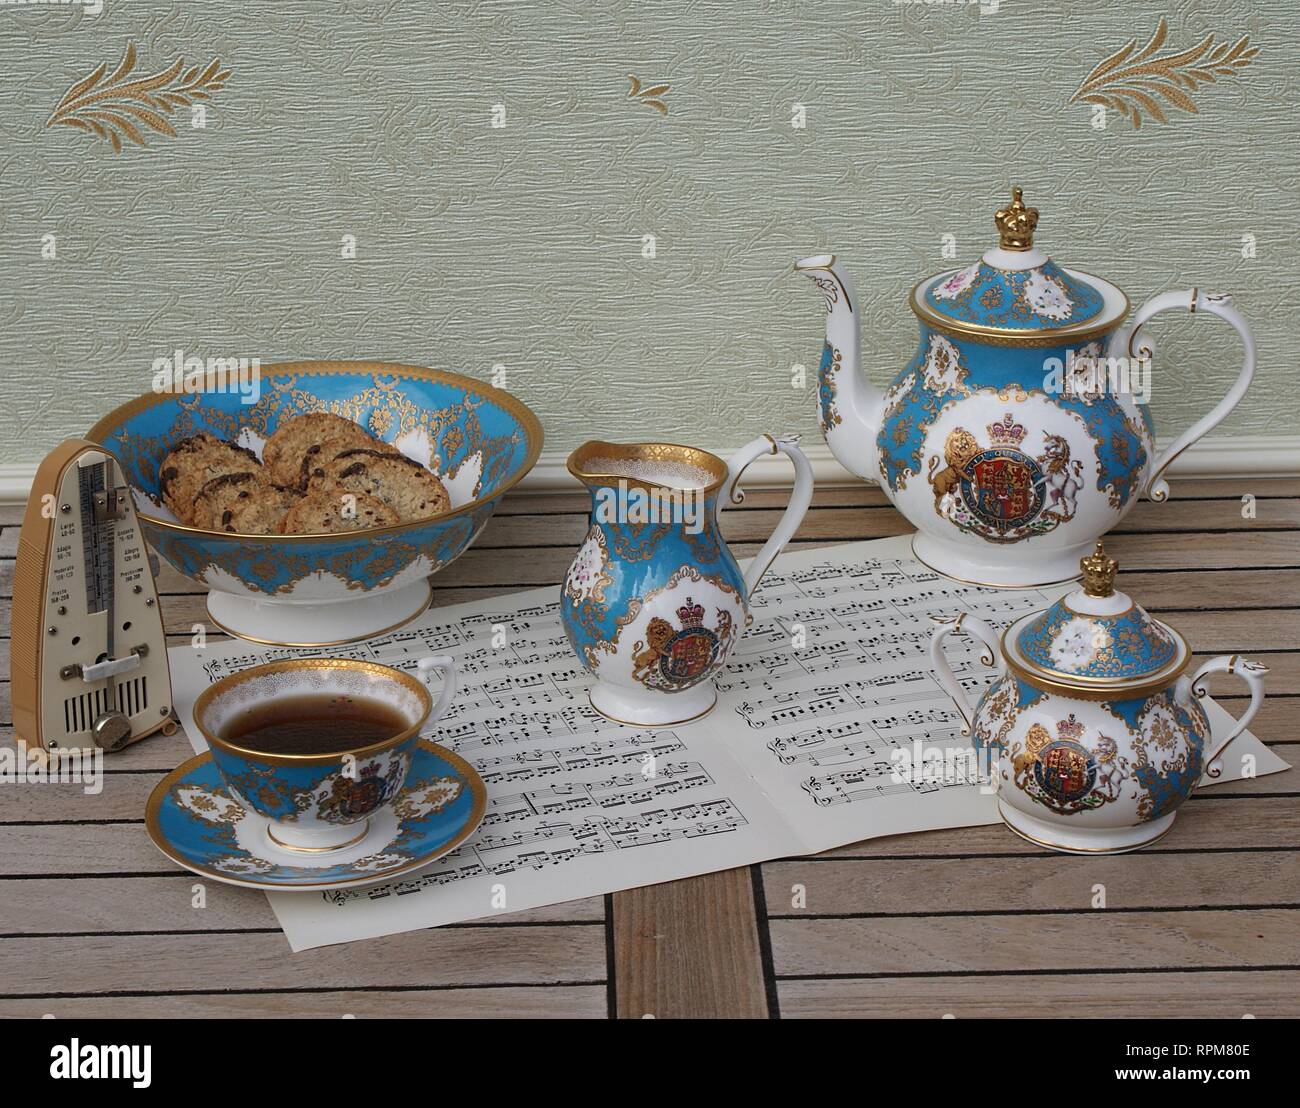 English teacup with saucer, teapot, sugar bowl, cream jug and a cake bowl with cookies and a metronome for music on a sheet of music - Stock Image